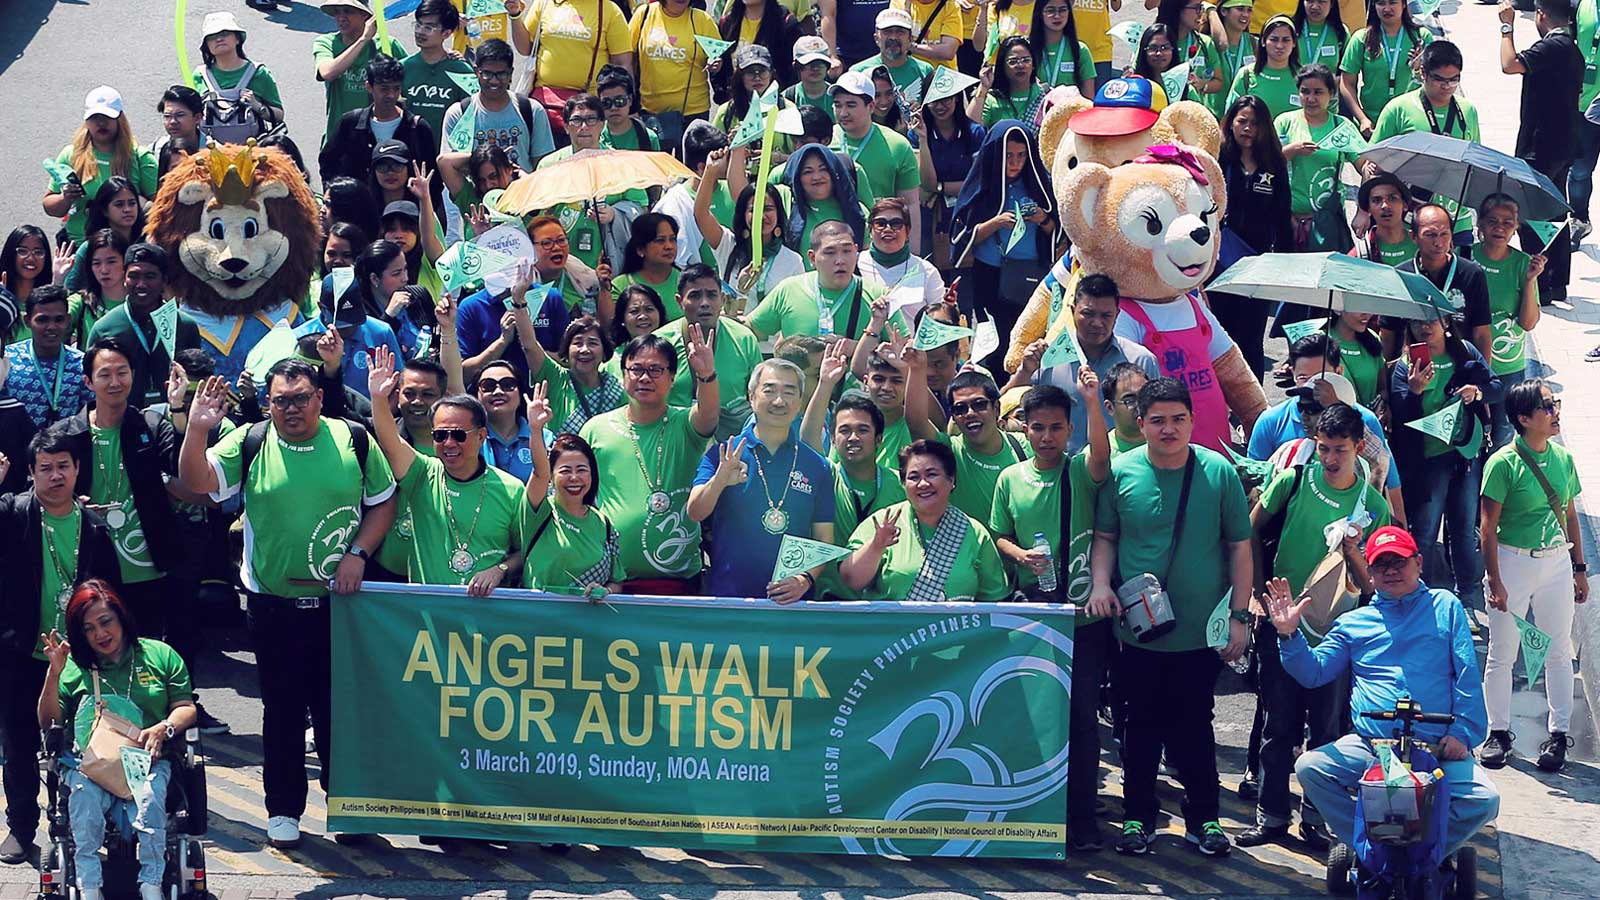 Thousands join Angel's Walk for Autism